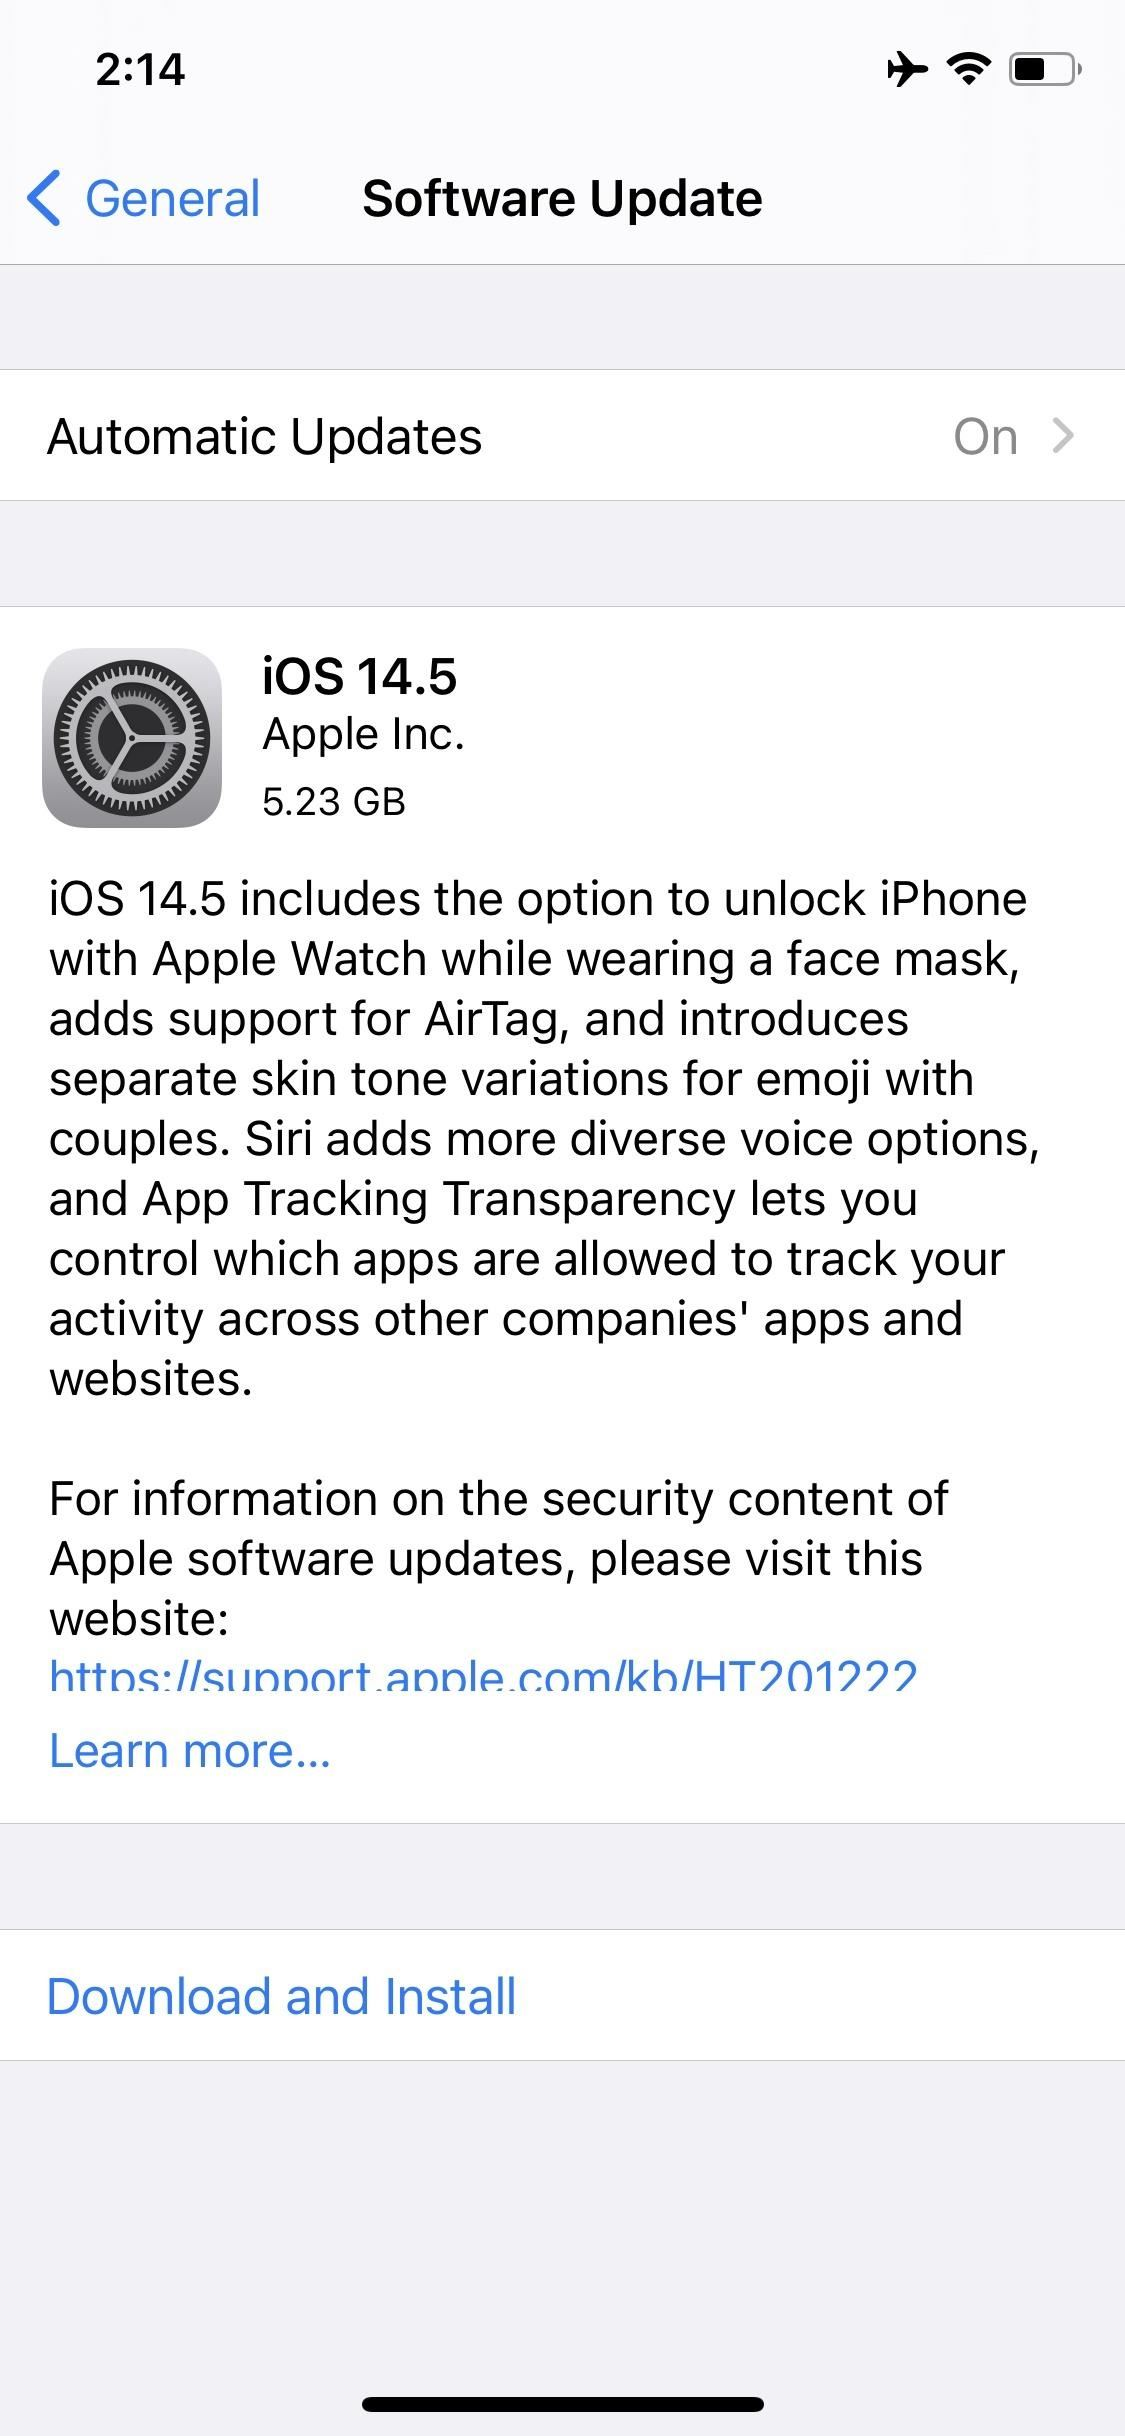 Apple Just Sent Out the First iOS 14.5 Release Candidate to Developers & Public Beta Testers